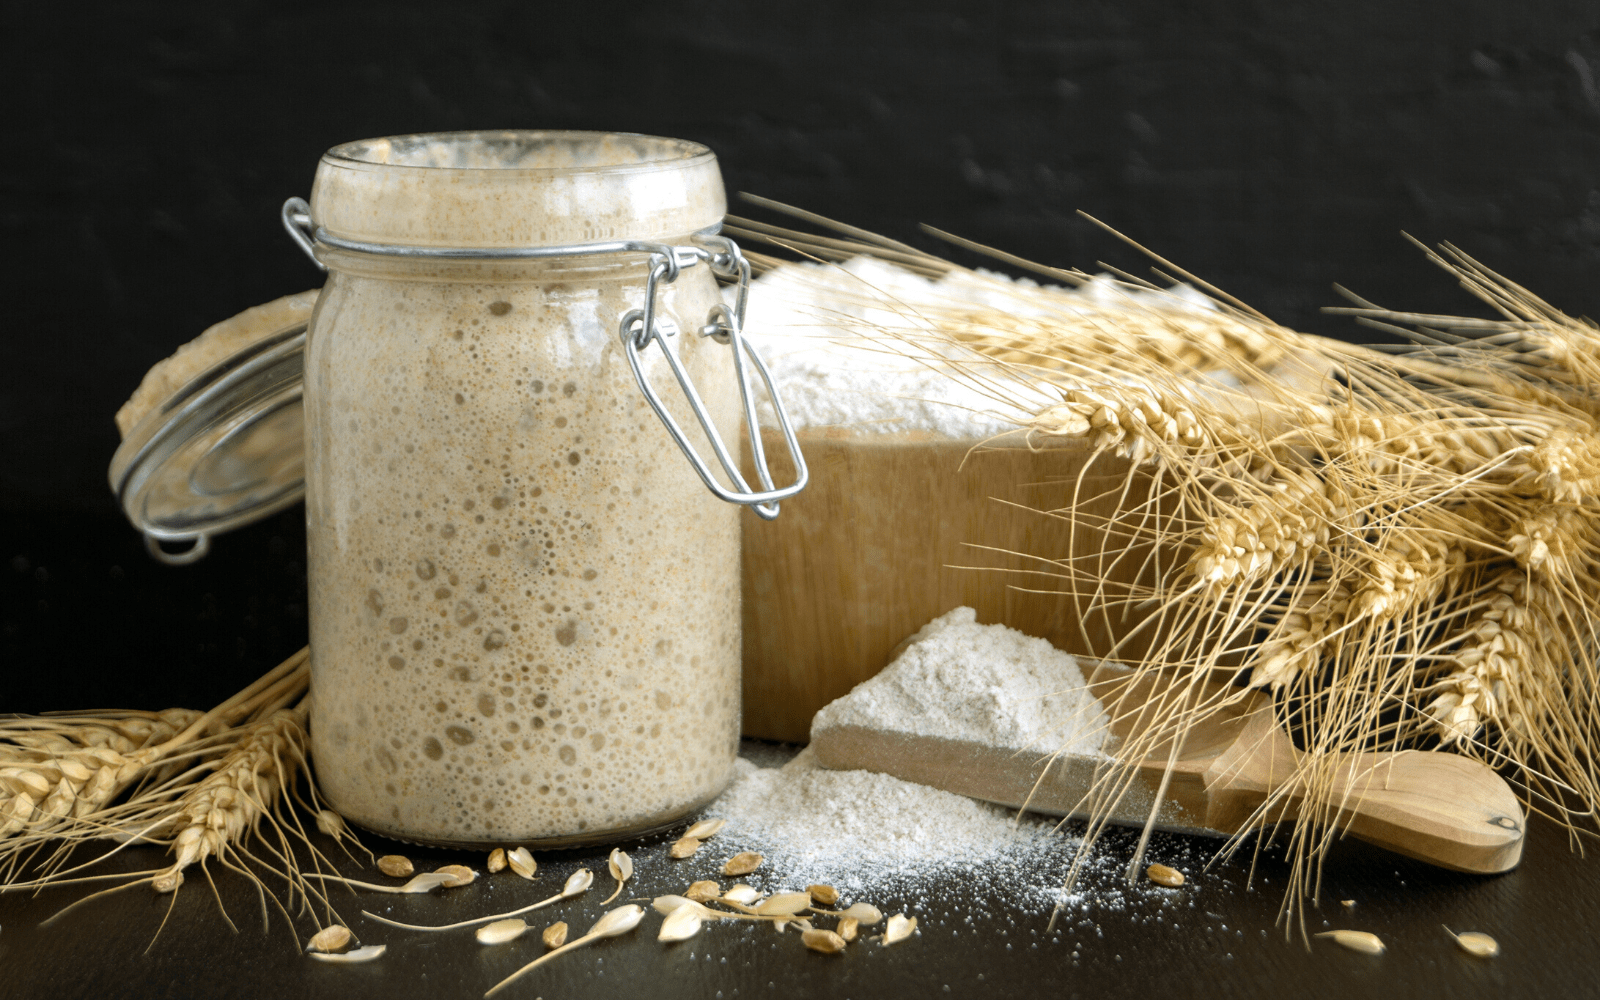 A jar of active rye flour sourdough starter